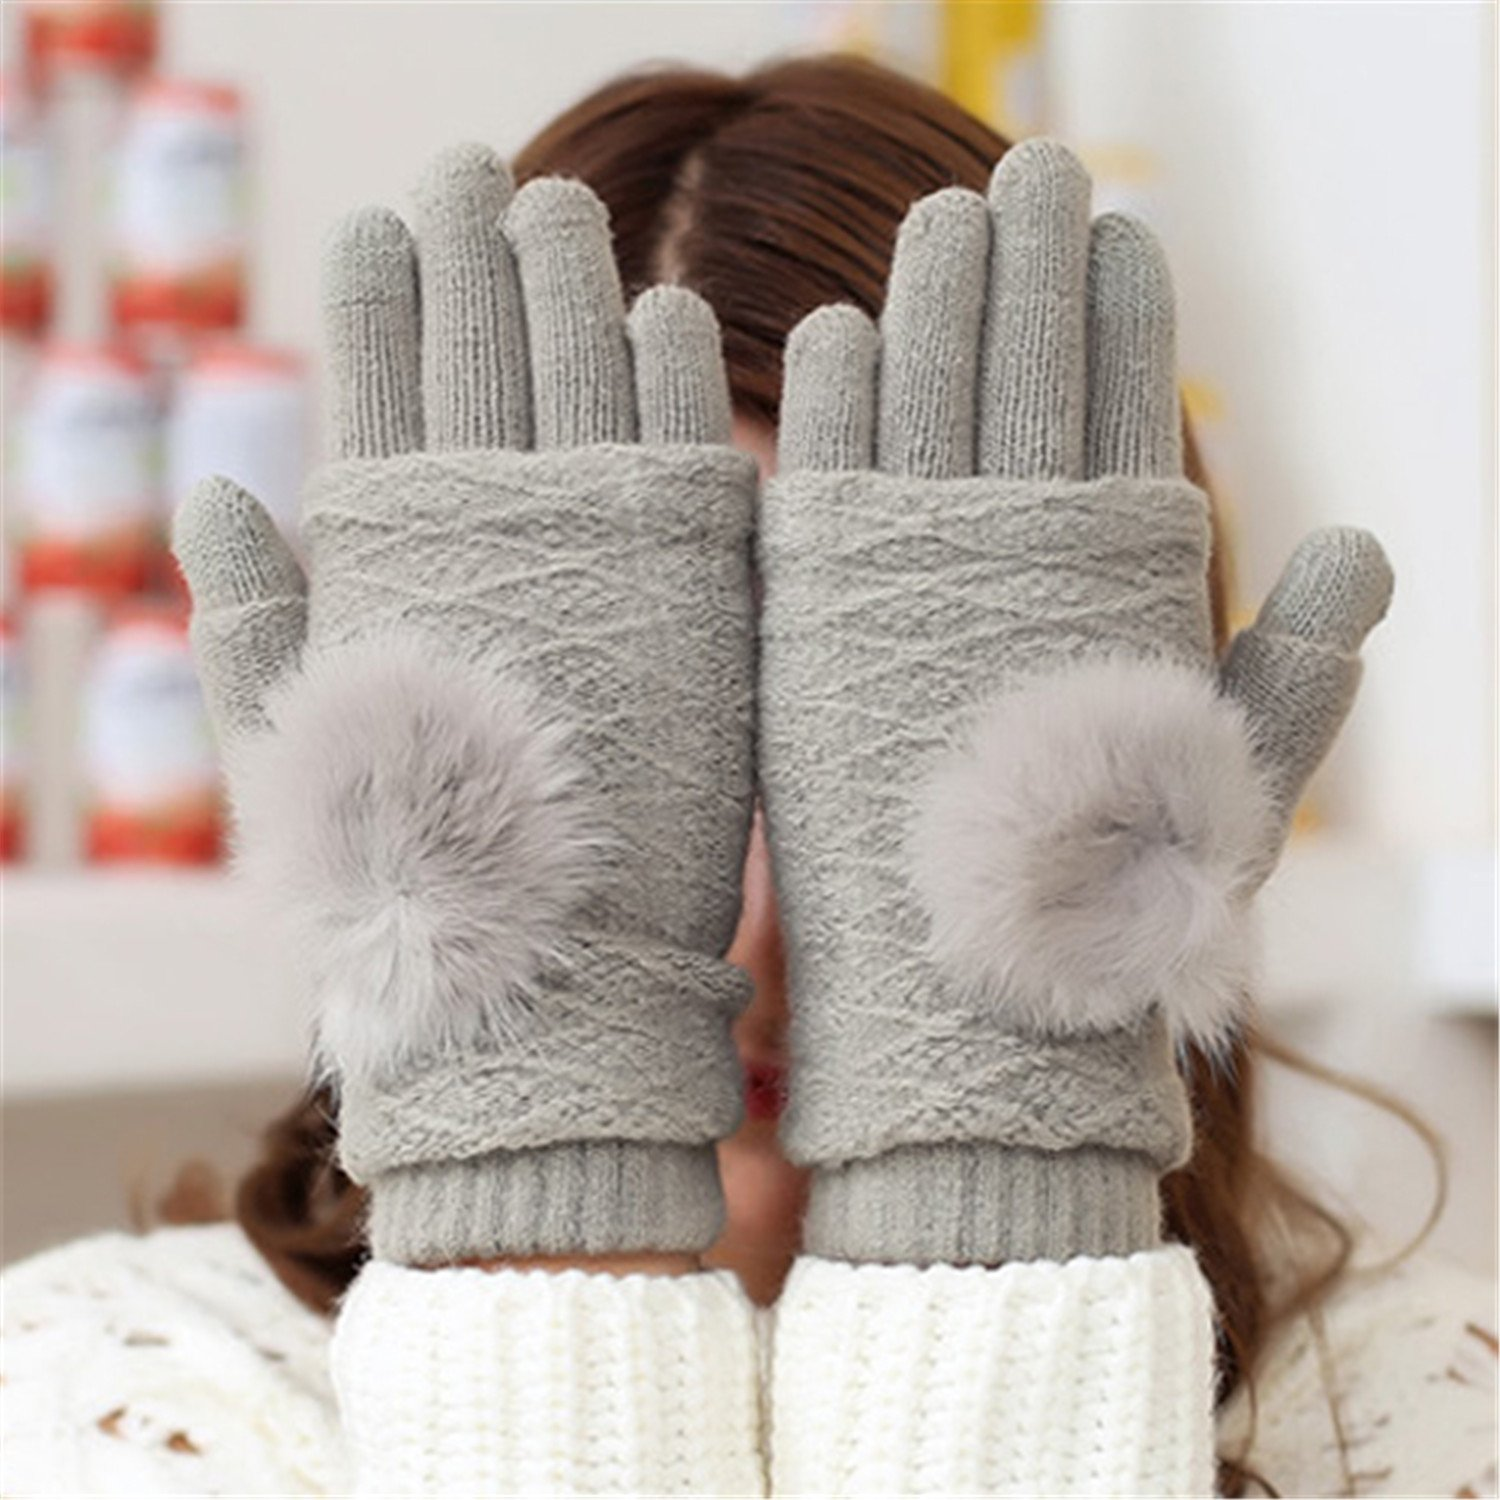 Better Annie Touch Screen Gloves Women Winter Warm Double layer Separable Fingerless Gloves Female Rabbit Fur Pom Poms Mittens Gants Femme Light Gray One Size